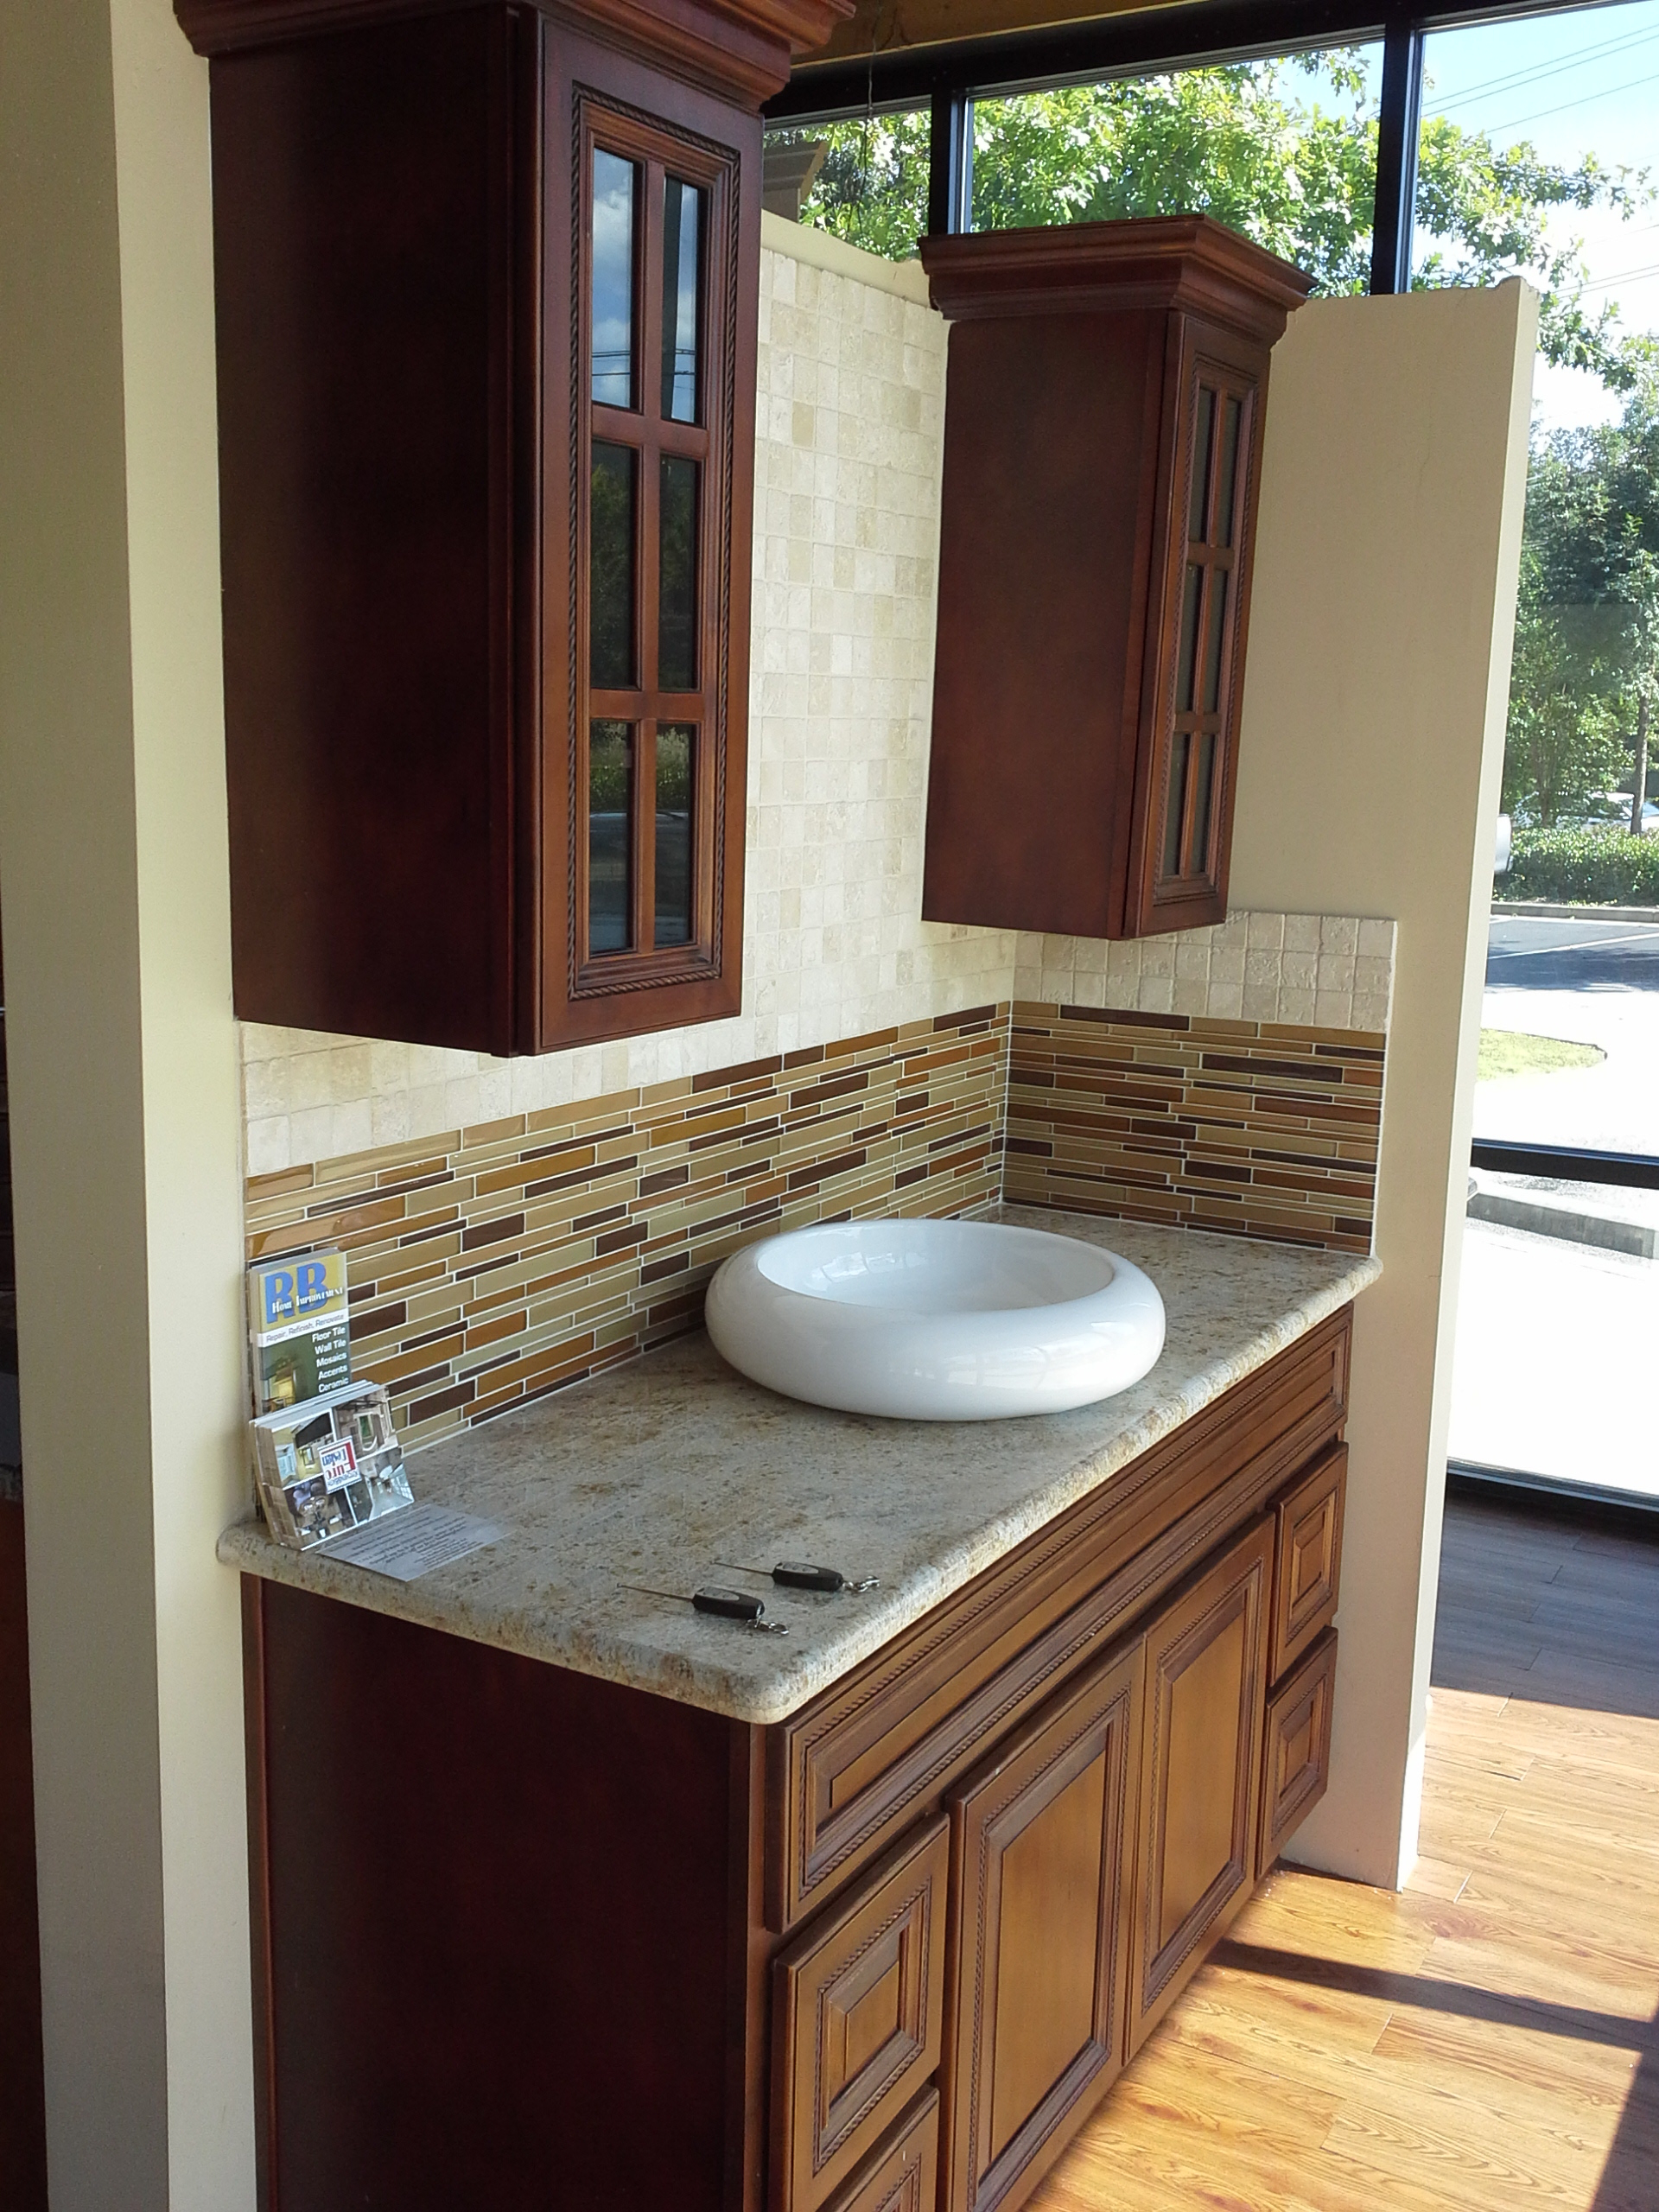 Kitchen Bath Euro Design Johns Creek Ga Company Profile